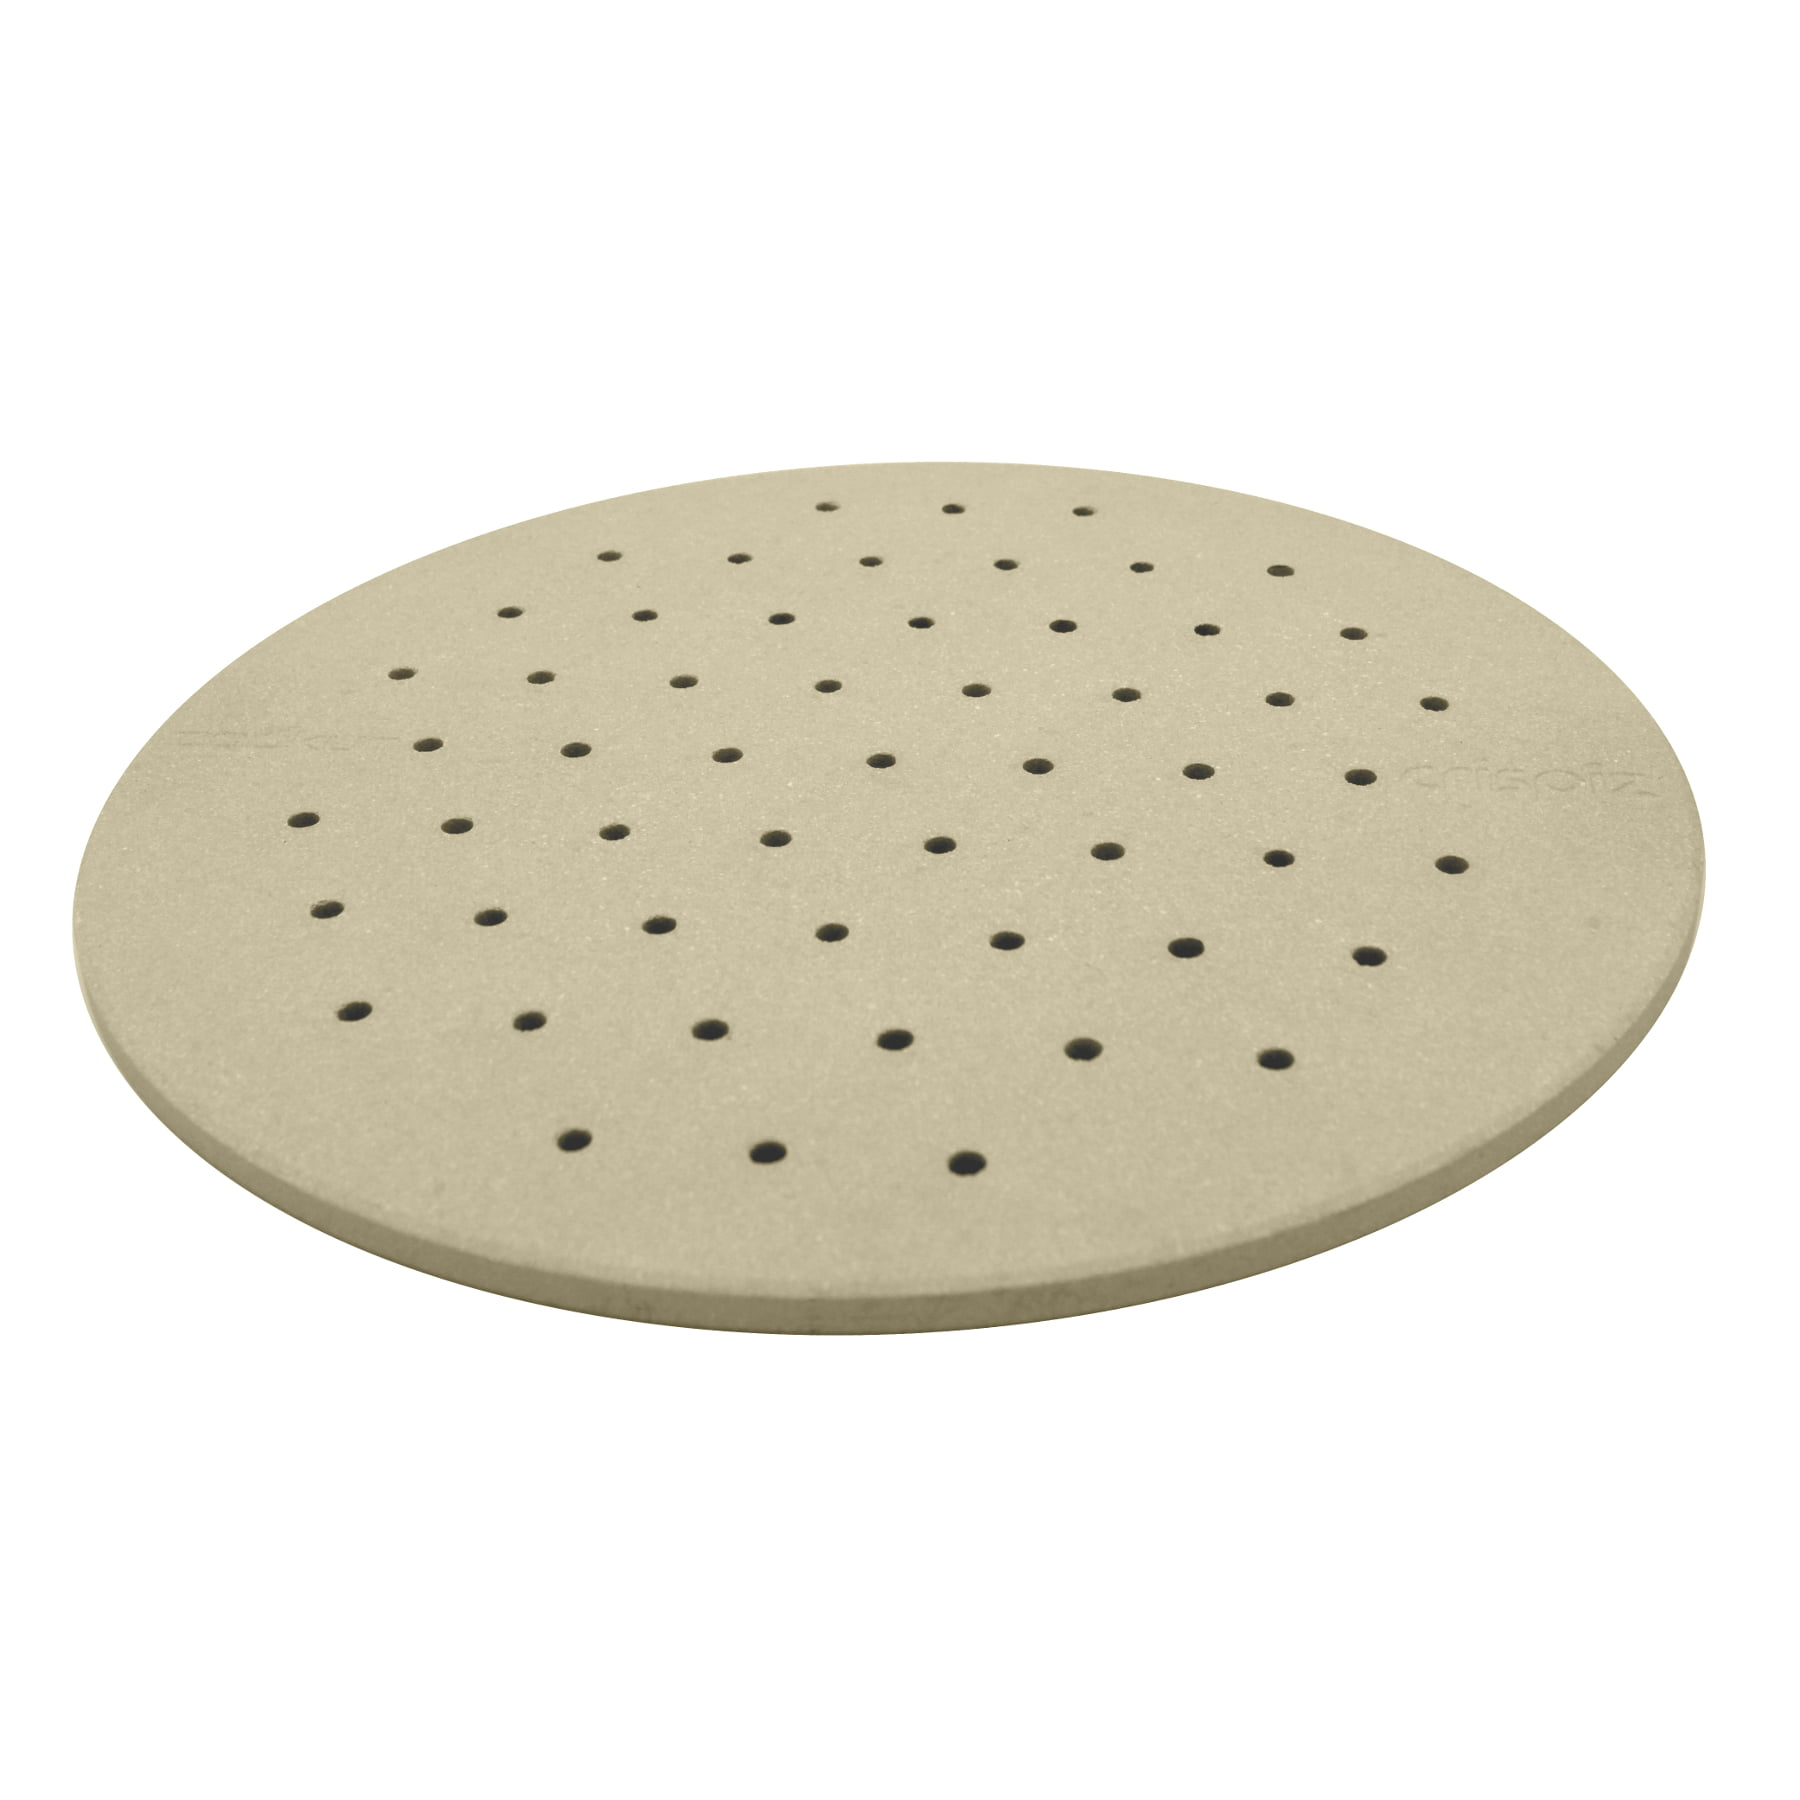 Cookut Crispiz Grey Cordierit 15 Inch Pizza Stone by Cookut